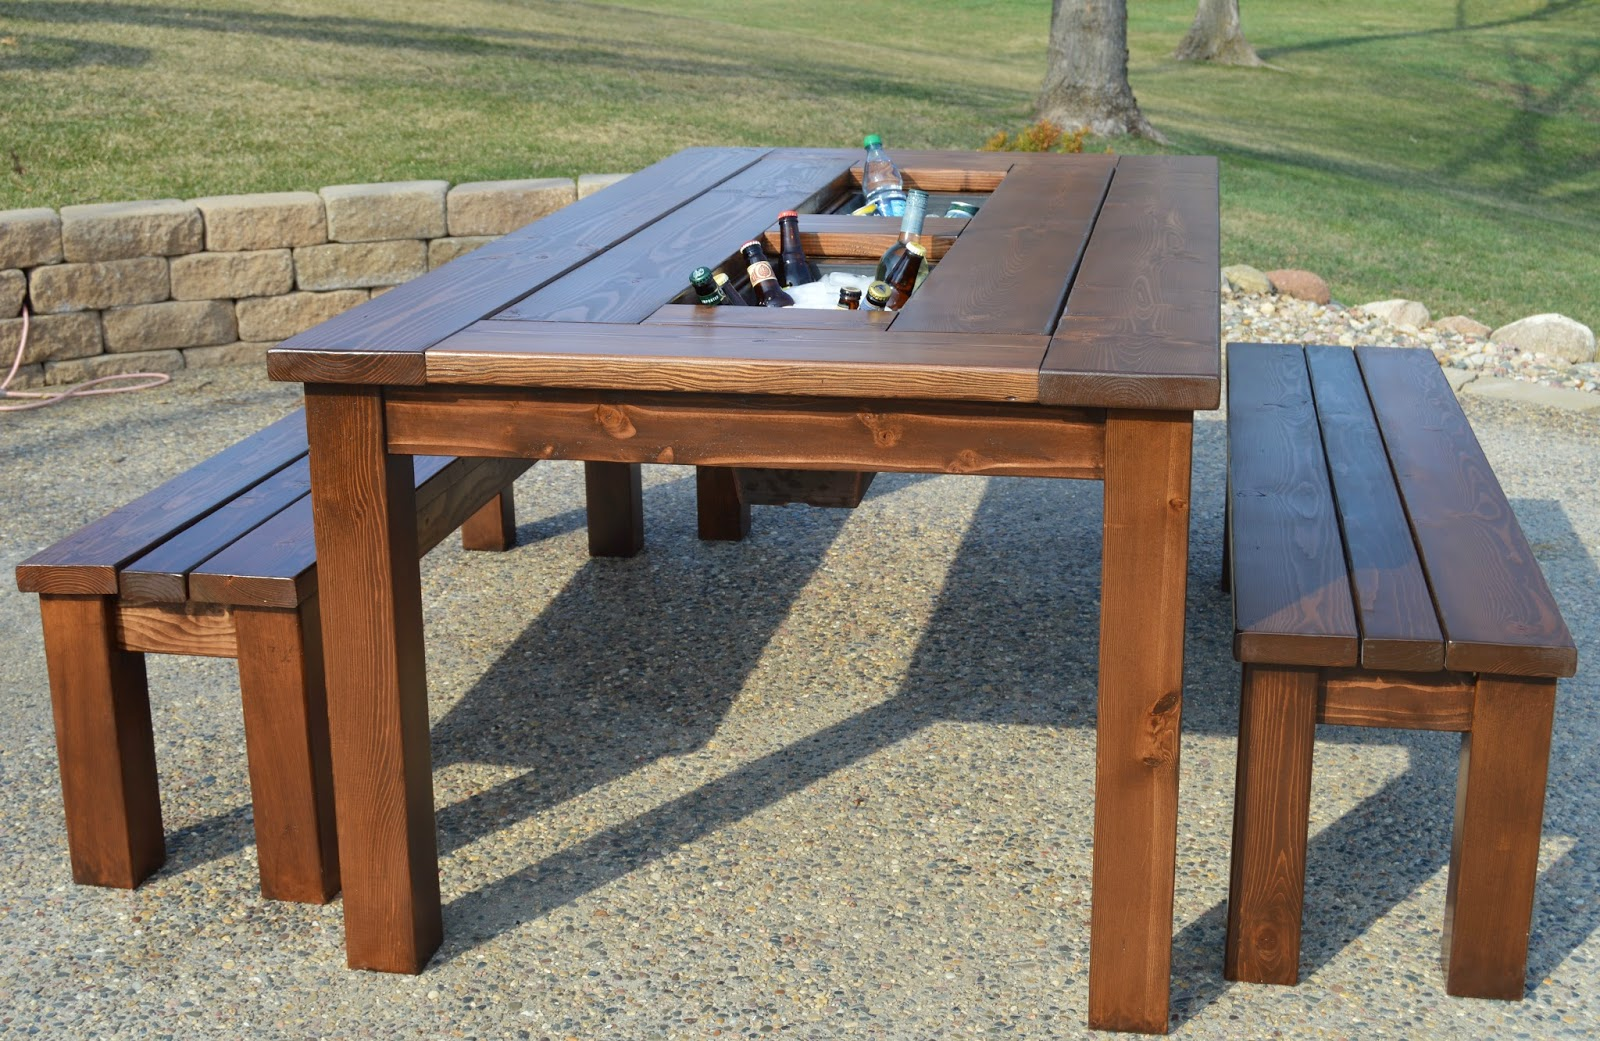 Permalink to build your own wooden patio table